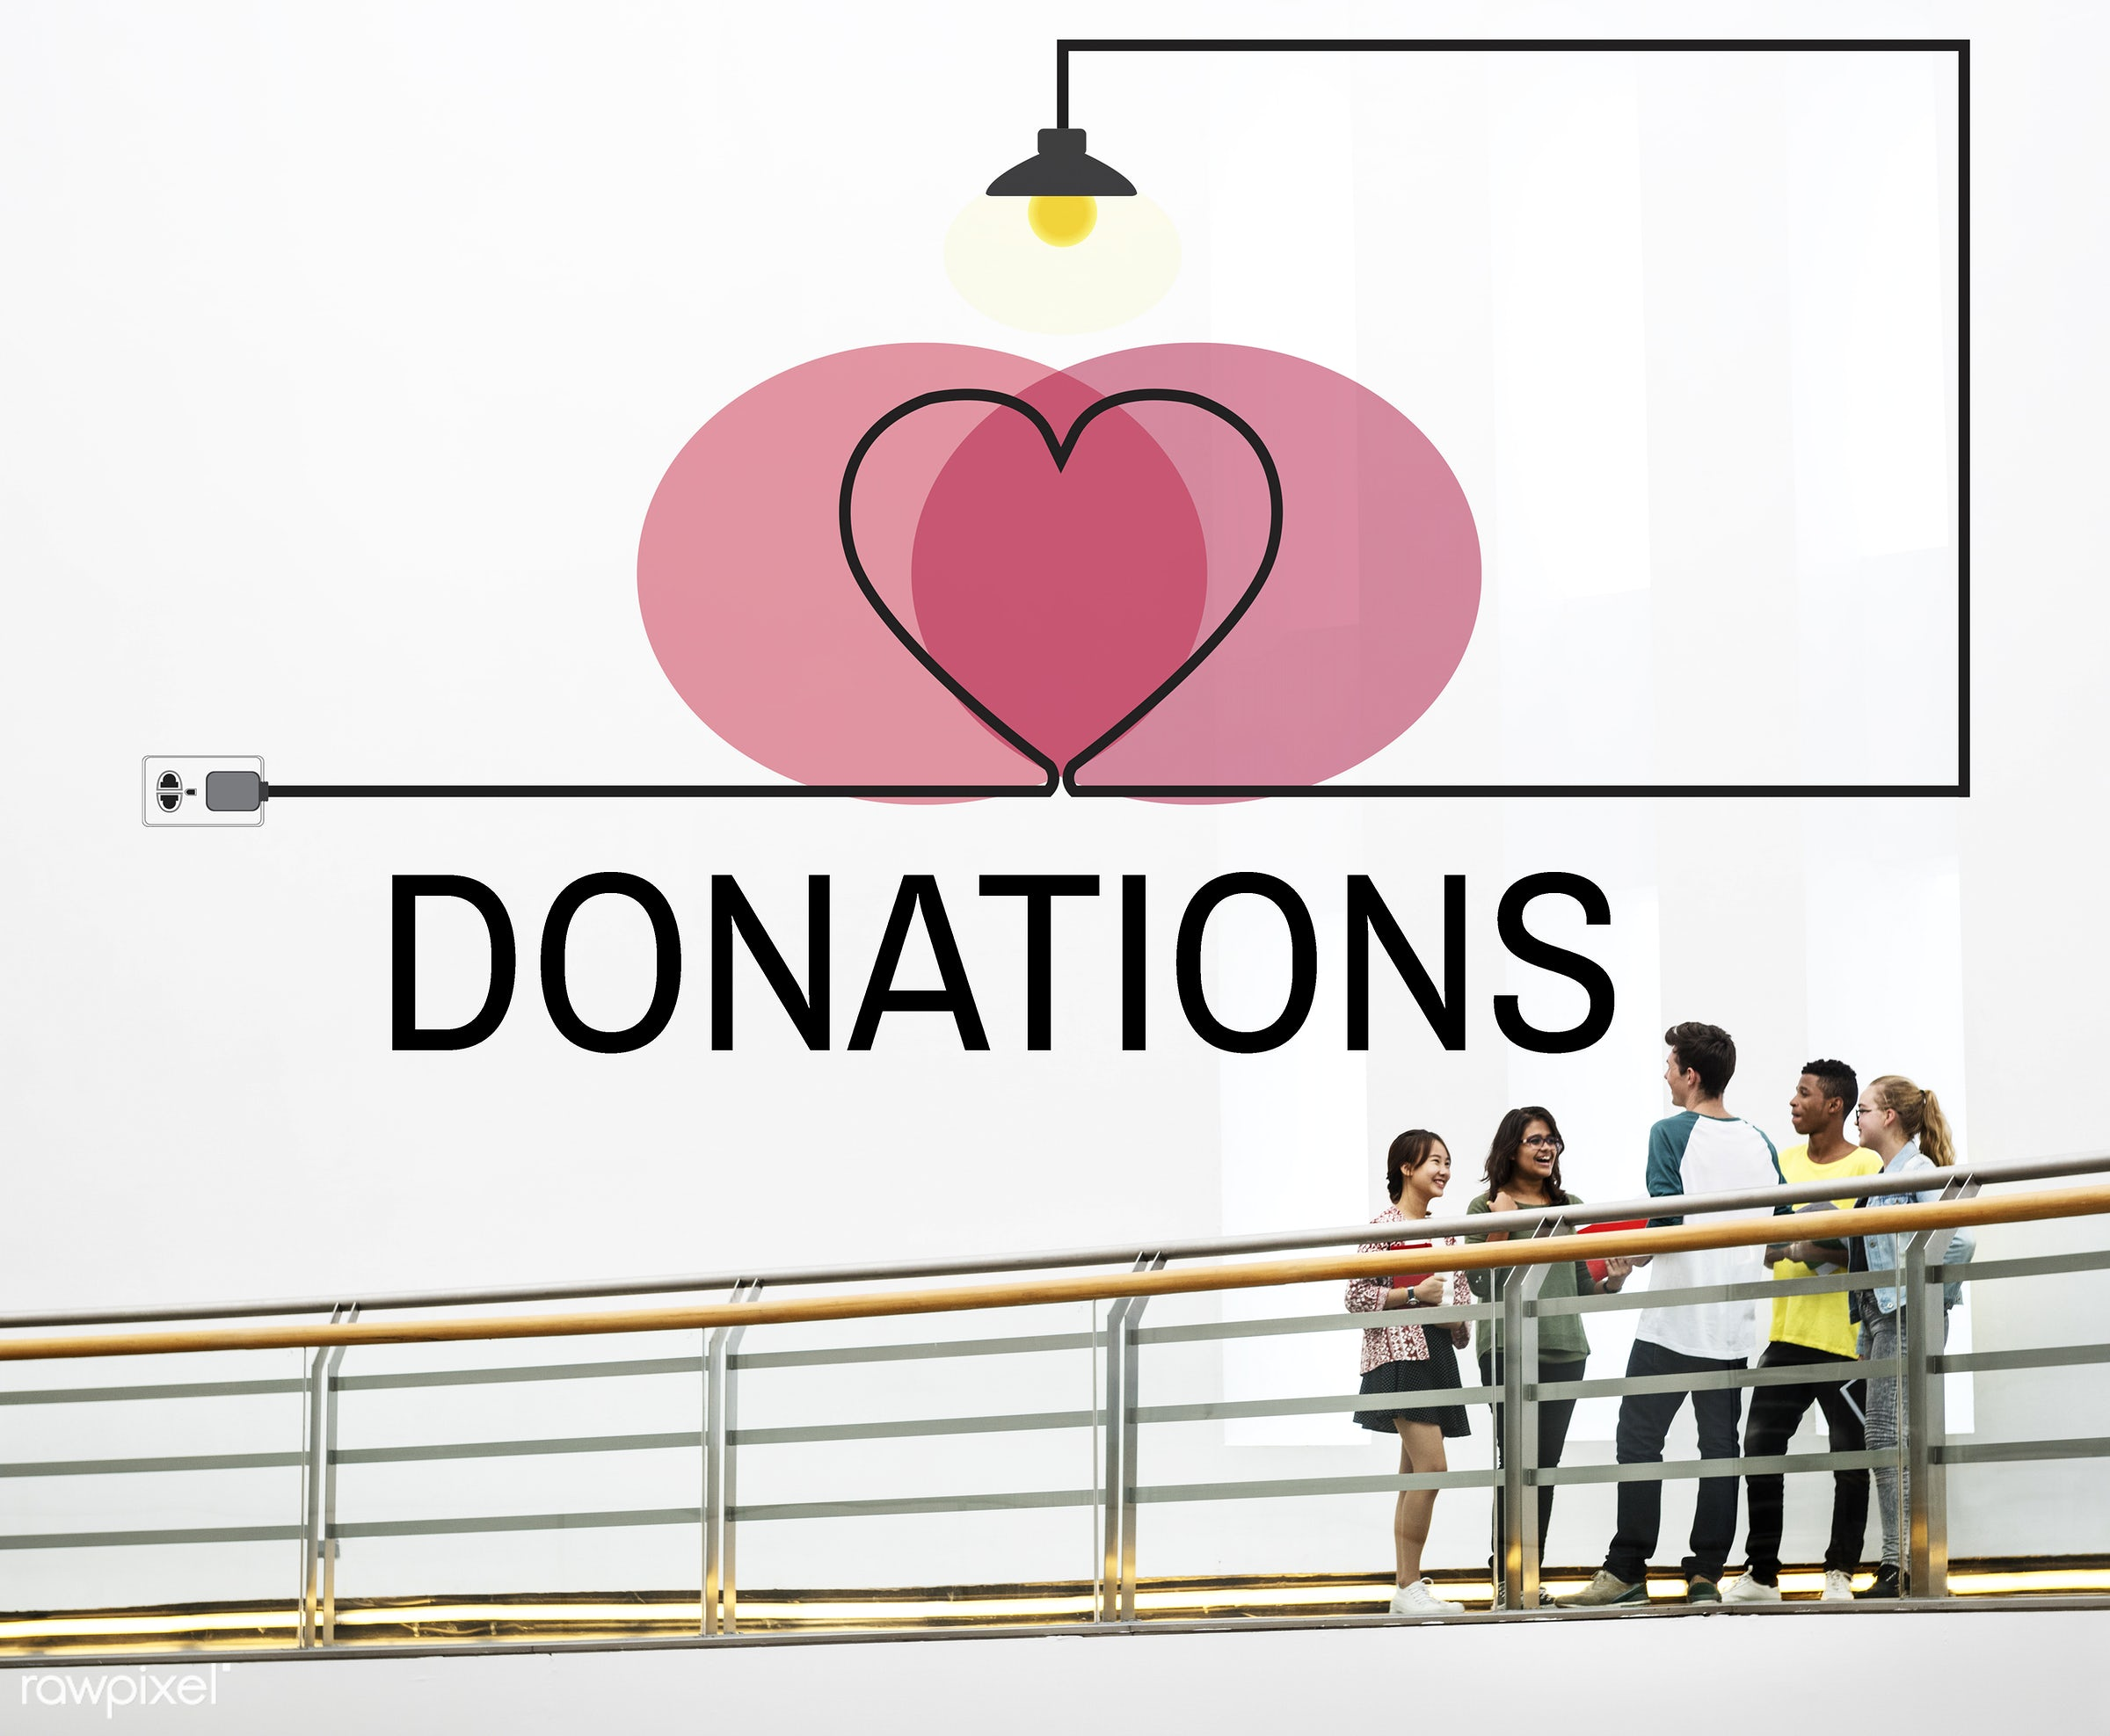 aid, assistance, book, books, boy, bridge, care, carrying, charitable, charity, community, contribute, donate, donations,...